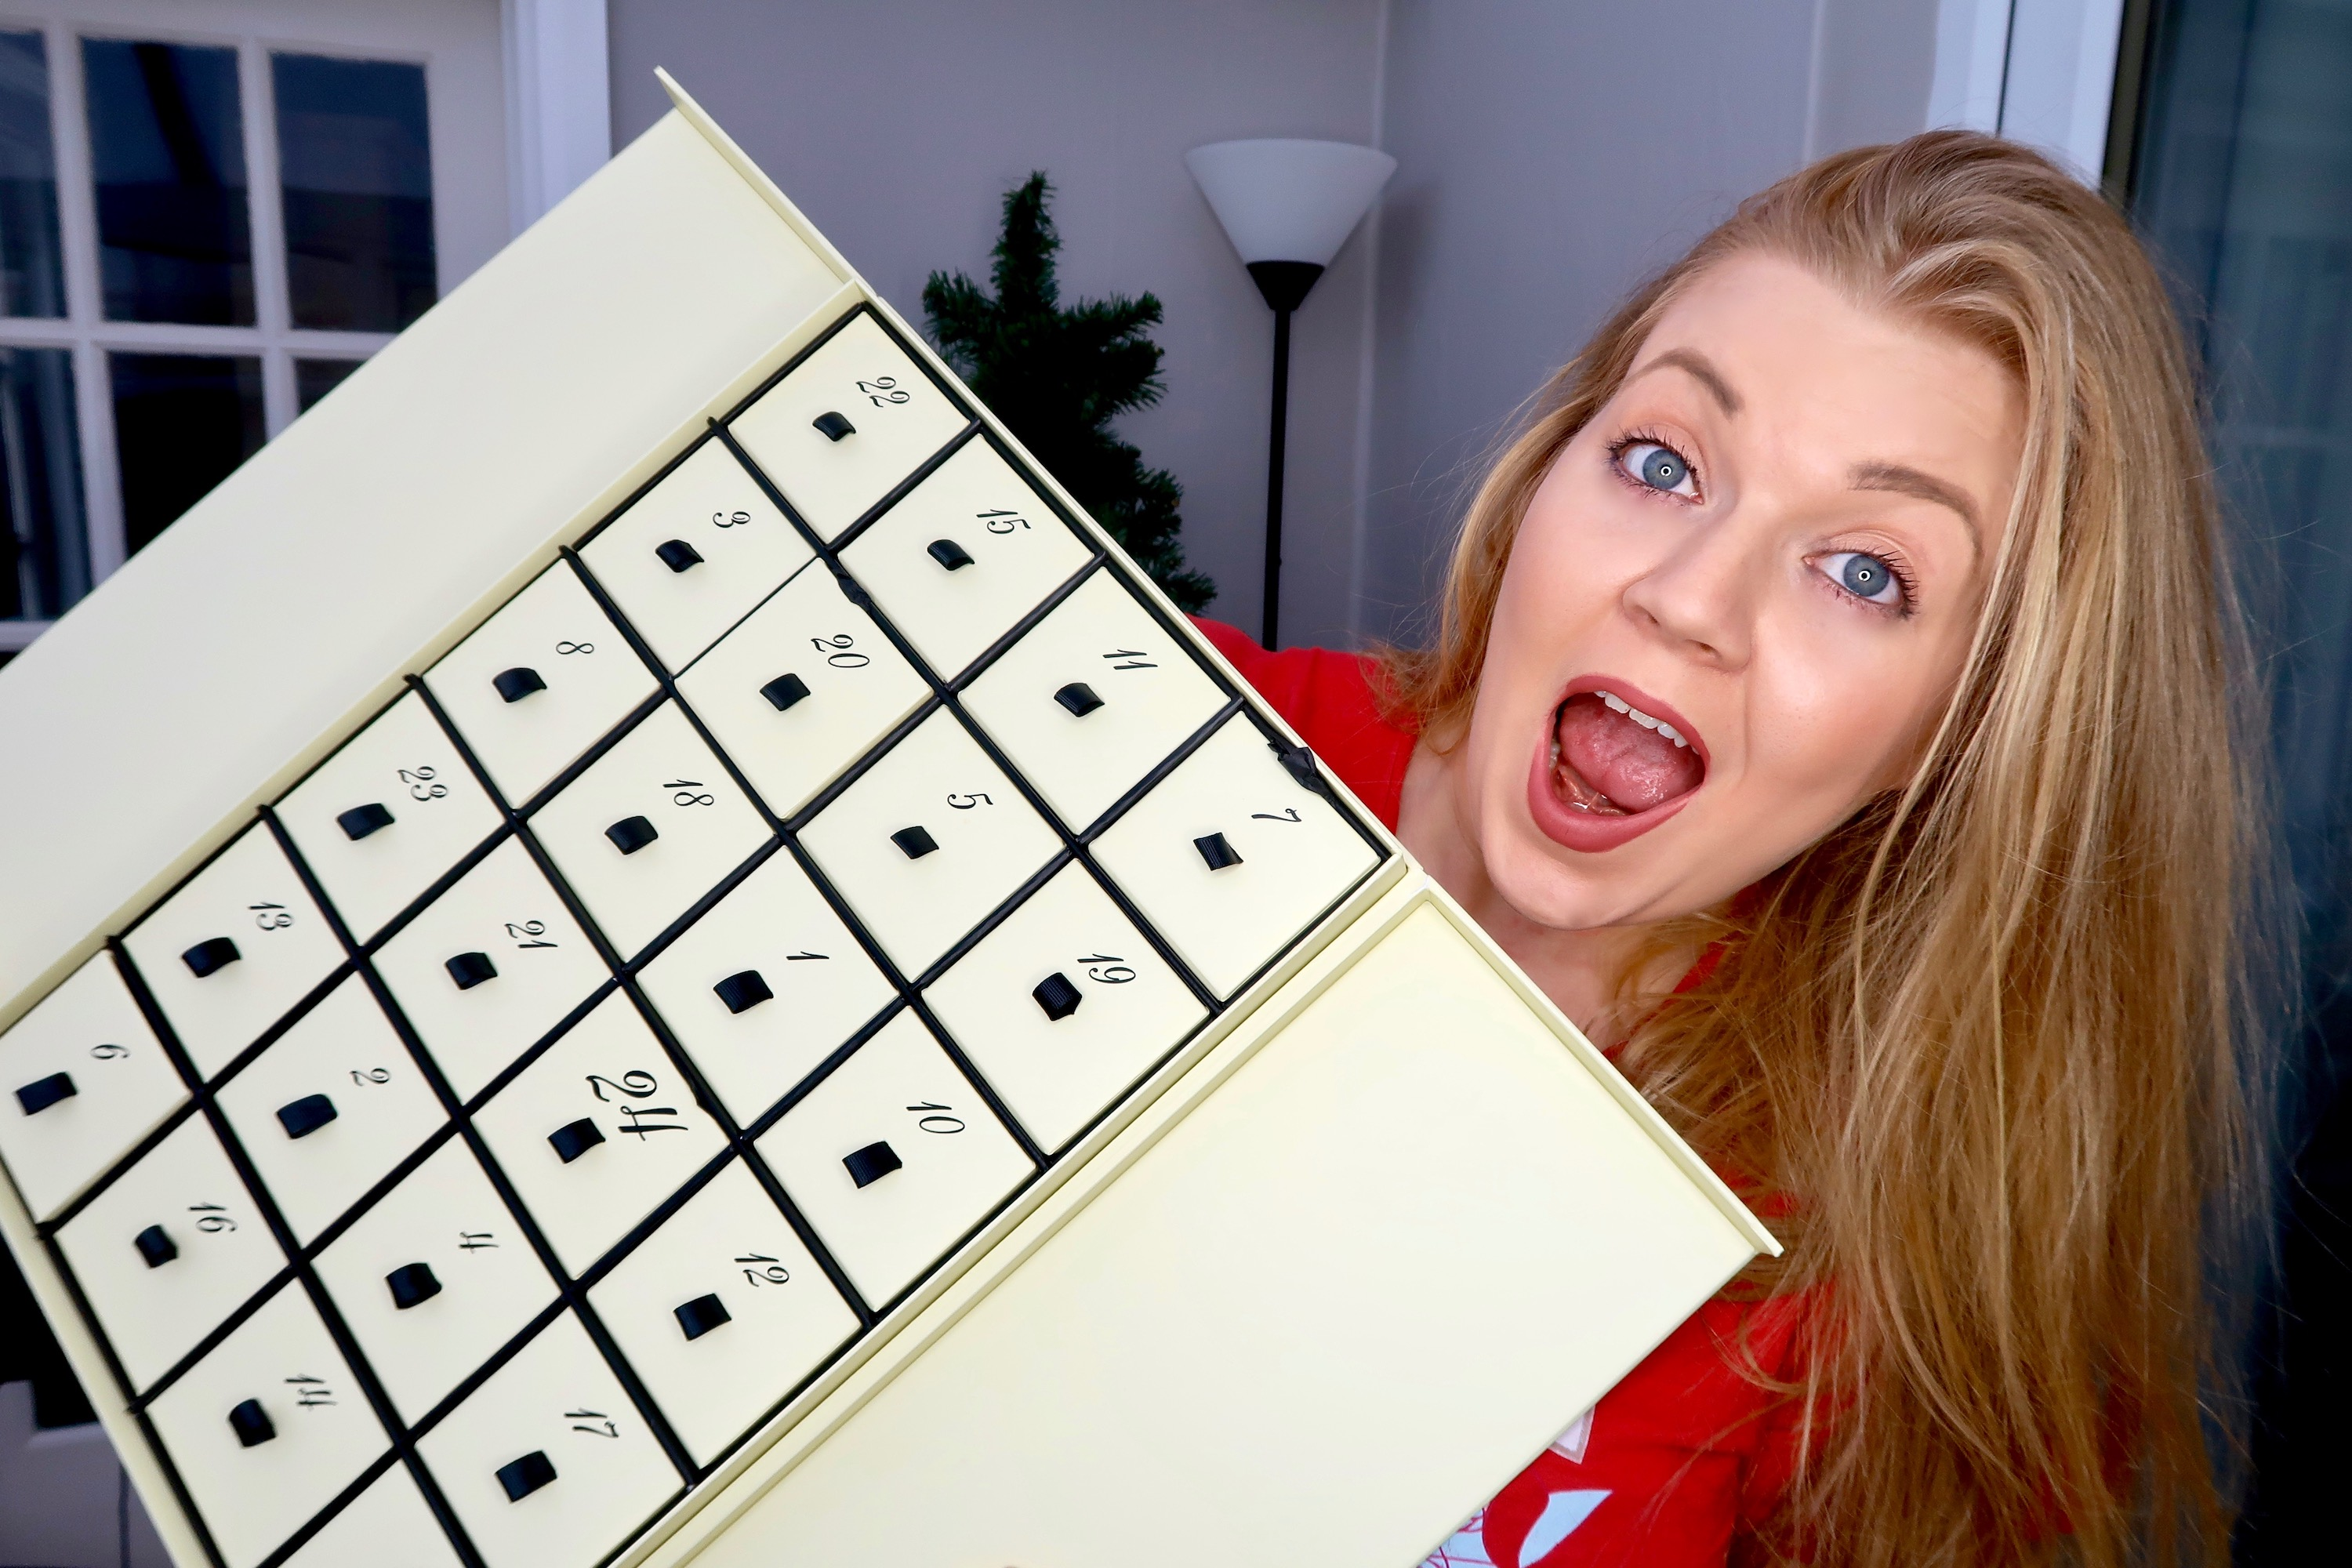 Aldi Luxury Advent Calendar | Aldi launch their Luxury Countdown to Christmas advent calendar, priced at £49.99 and a dupe of Jo Malone's sold out £300 calendar. We unbox it to see if it's worth the hype | Elle Blonde Luxury Lifestyle Destination Blog